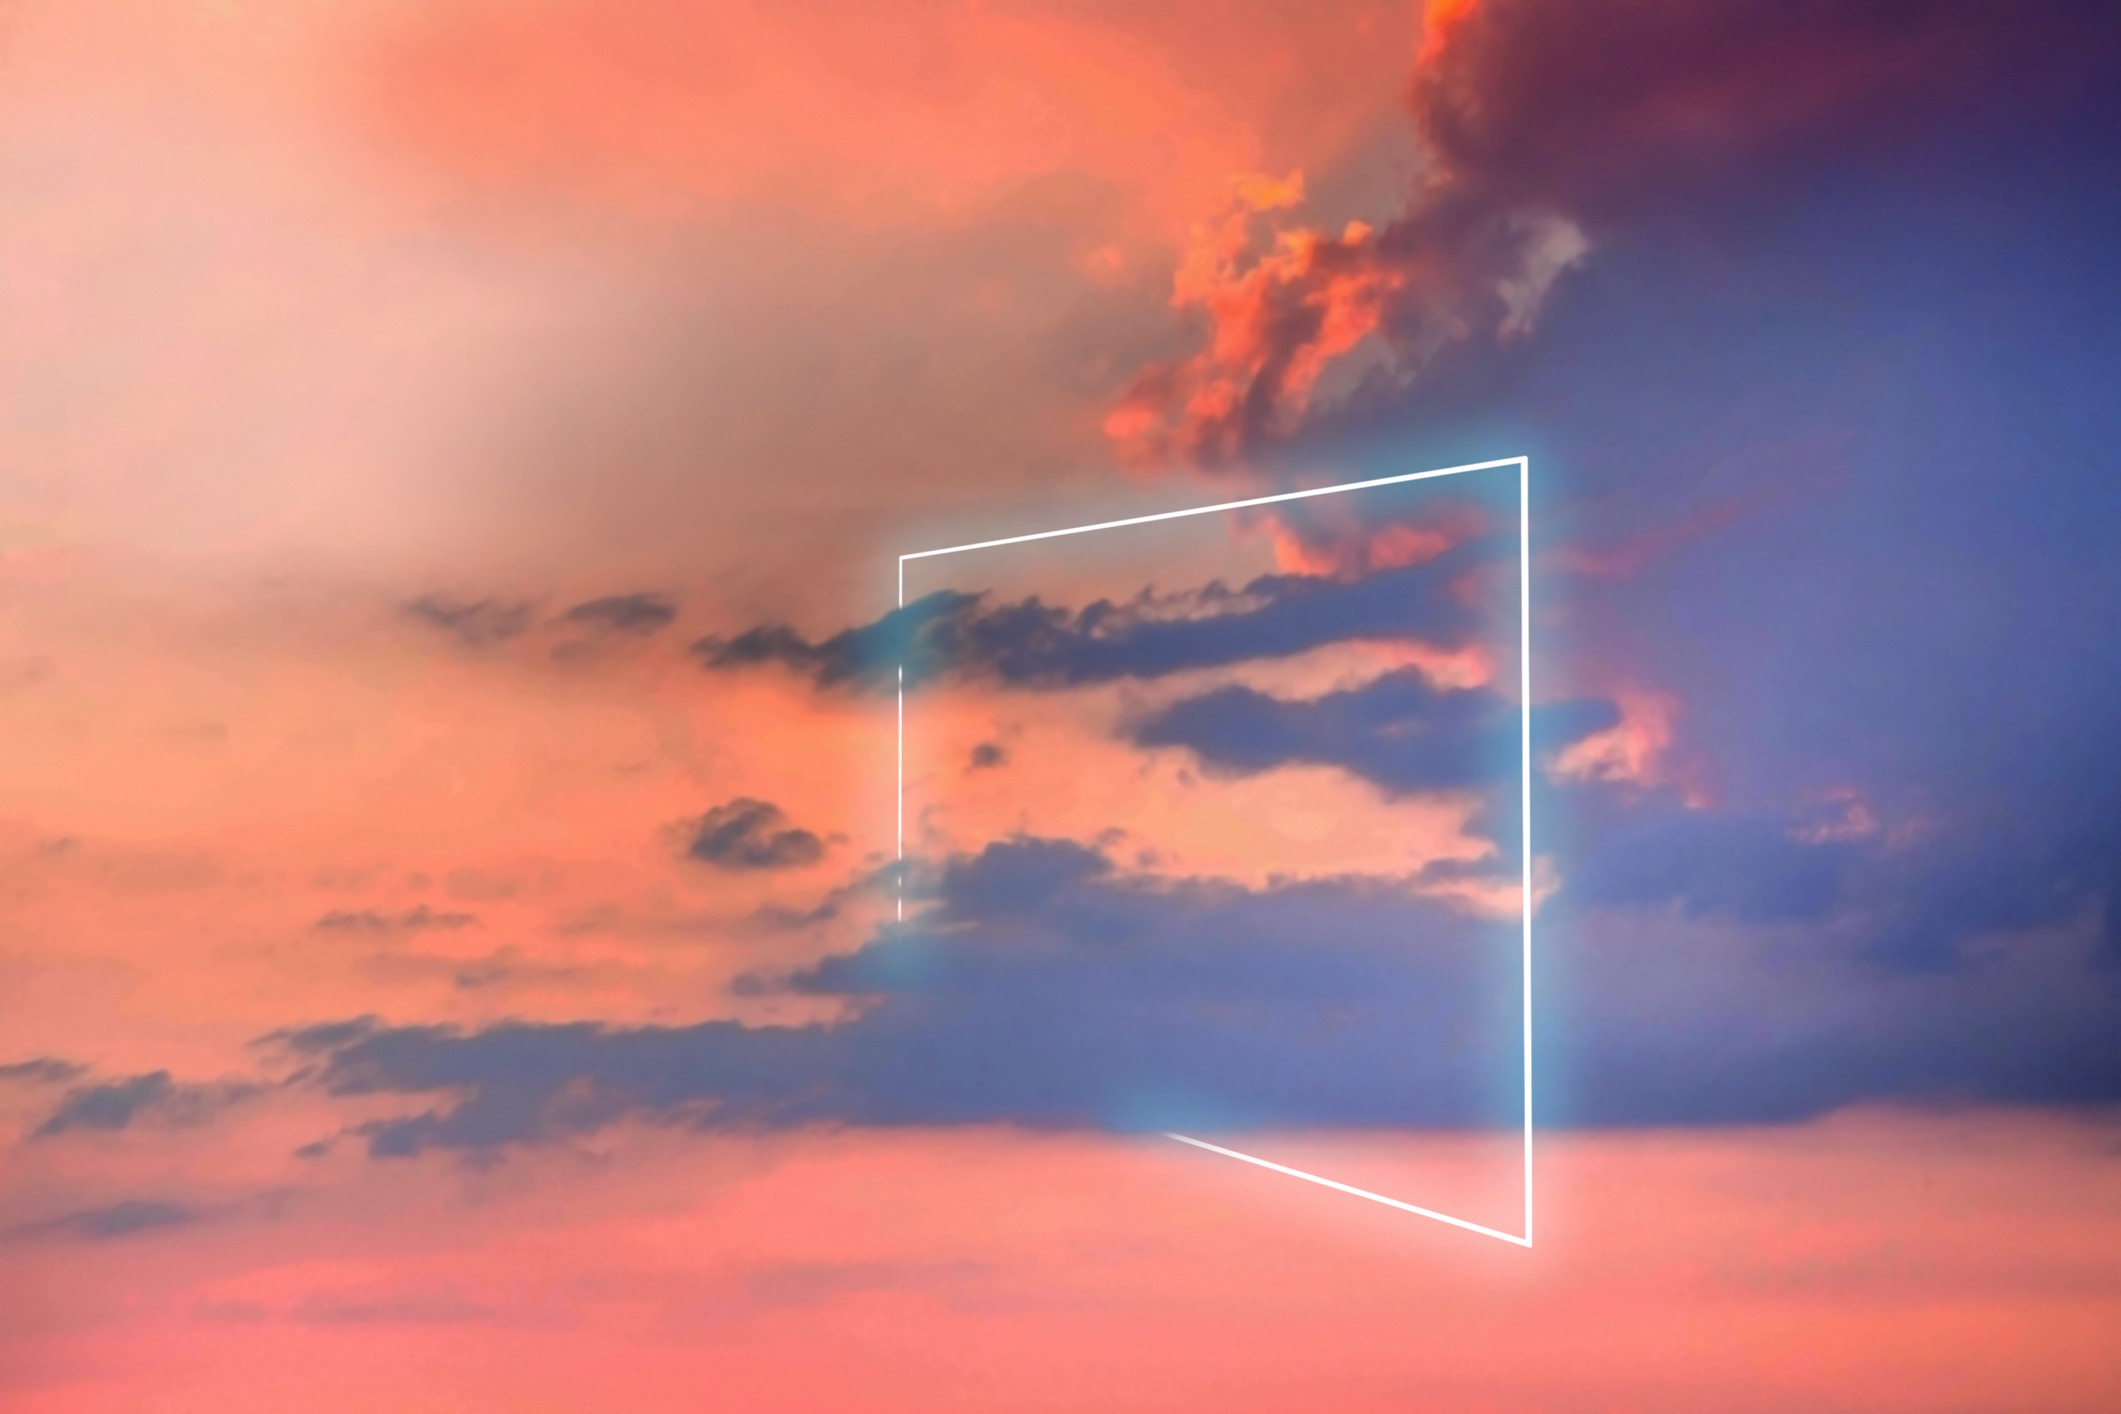 A photo of poetic neon square light against a sunset sky.